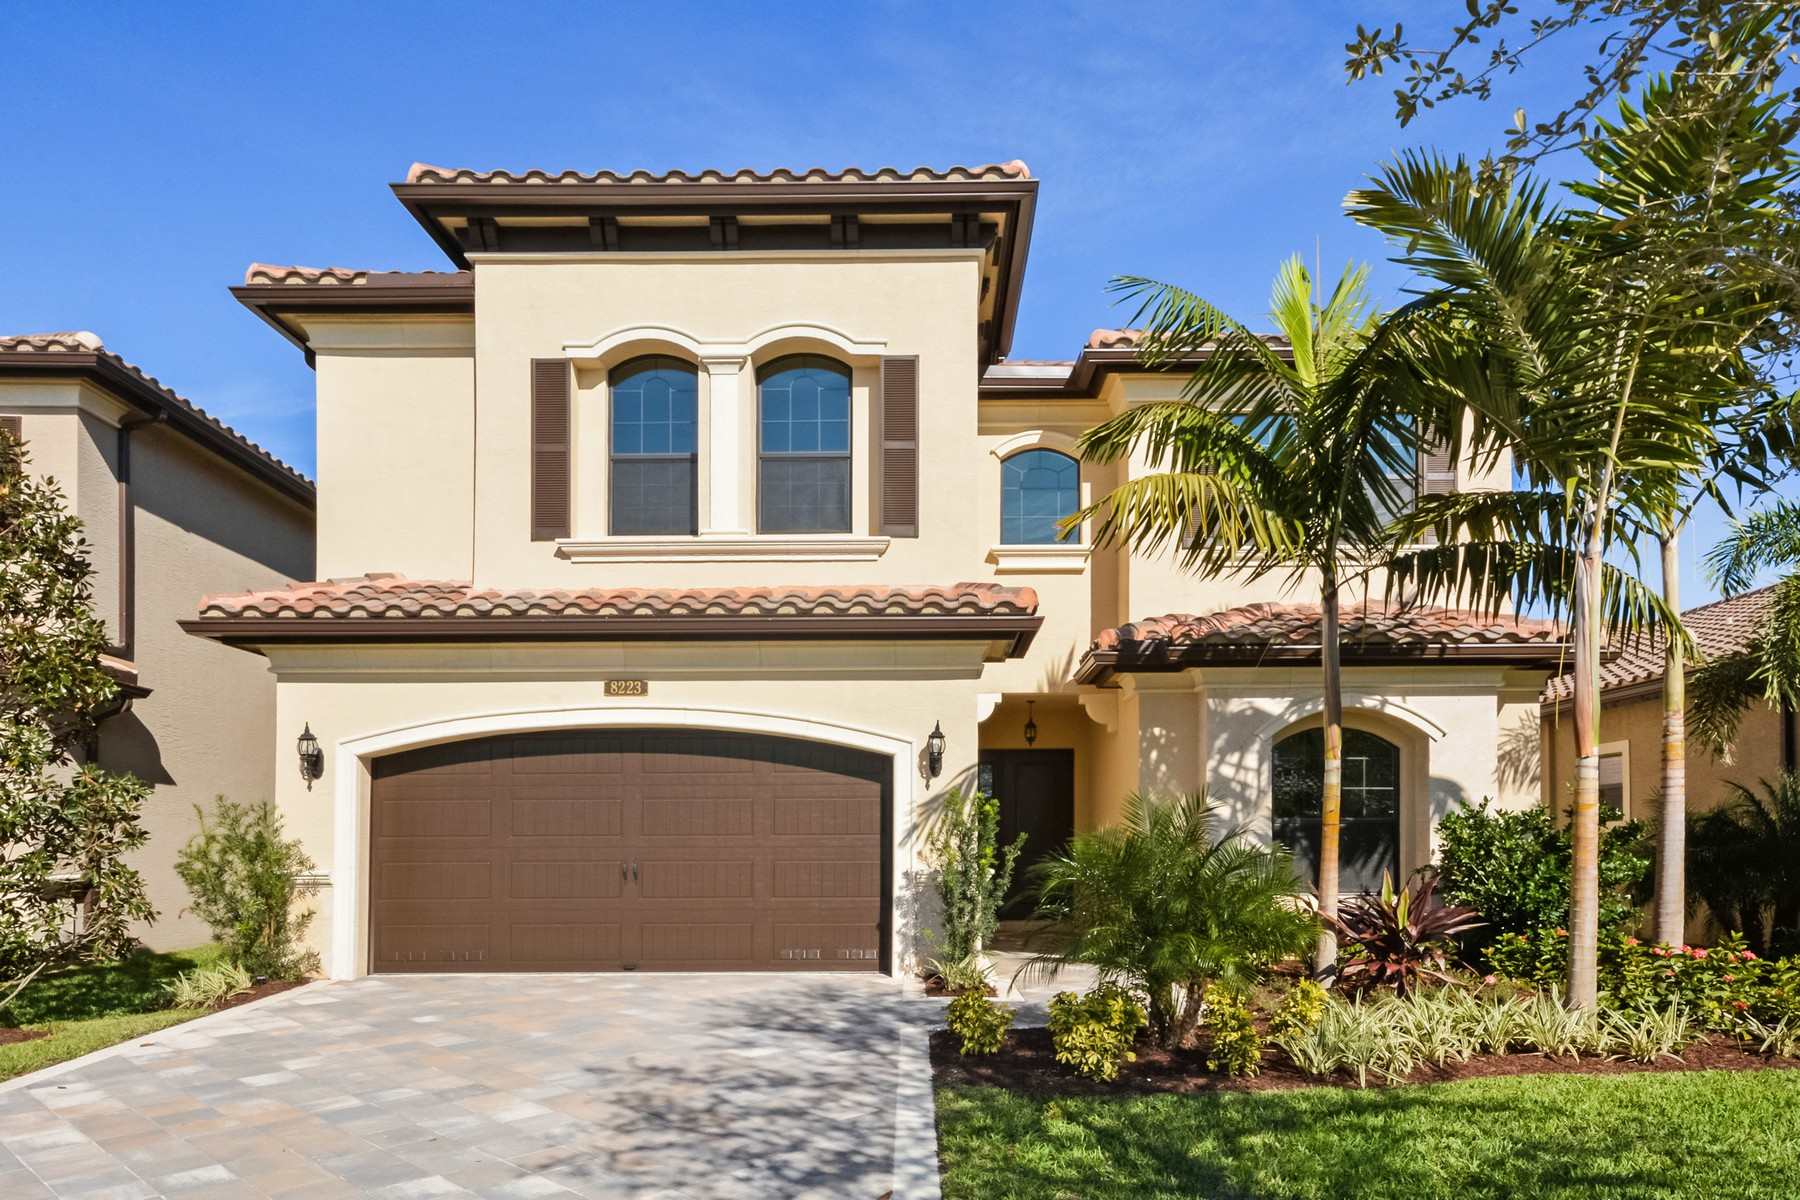 Single Family Home for Sale at 8223 Lawson Bridges Ln , Delray Beach, FL 33446 8223 Lawson Bridges Ln Delray Beach, Florida 33446 United States